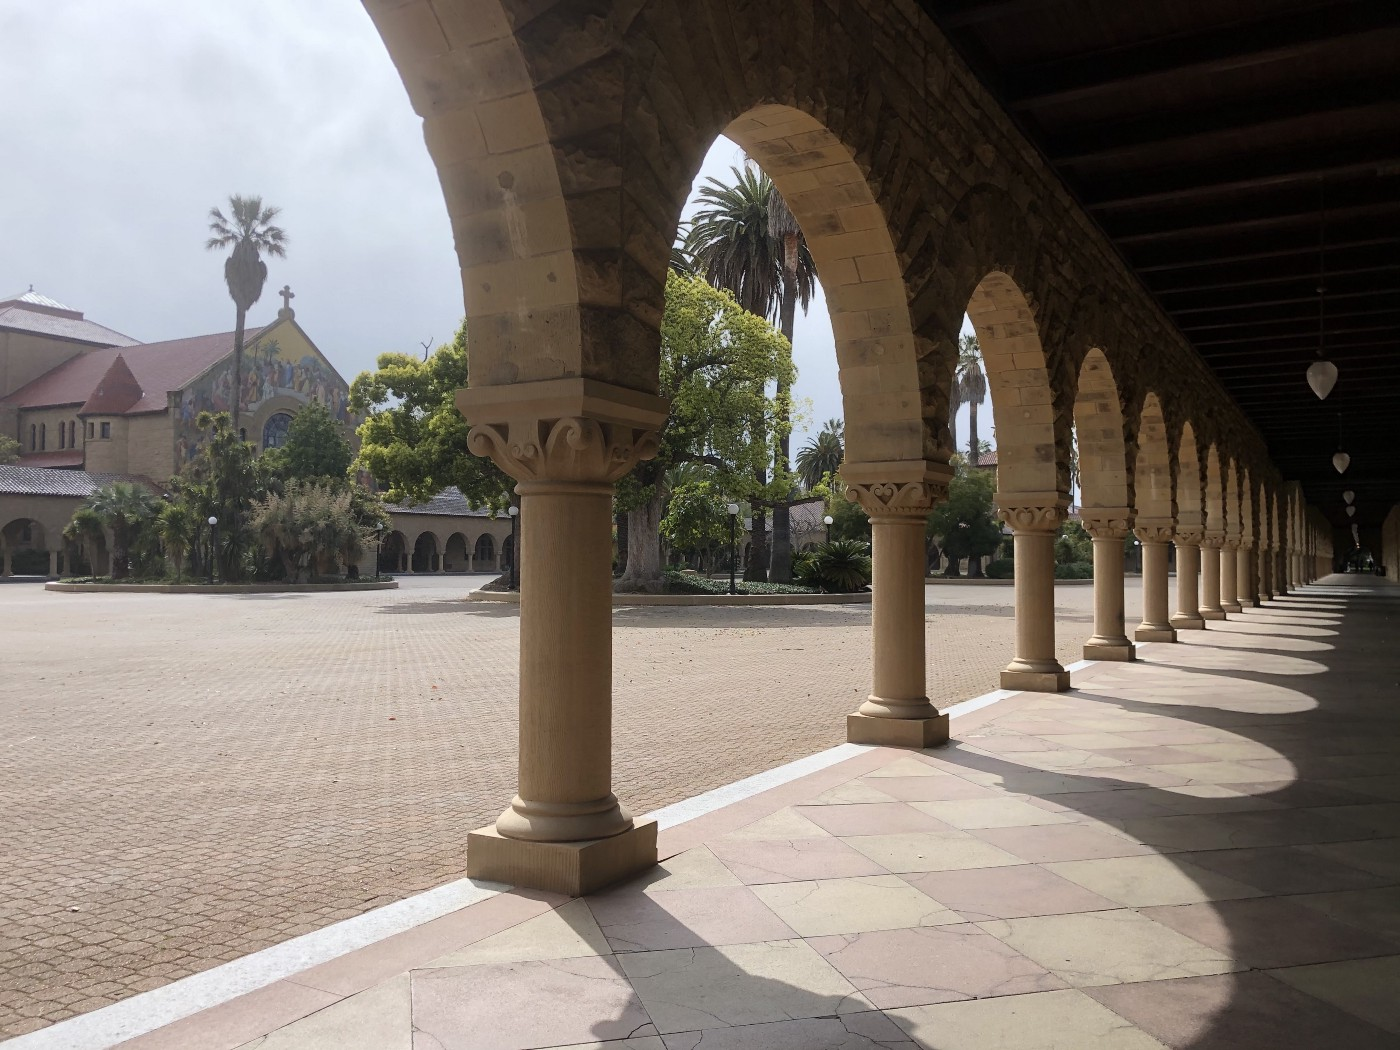 Picture of a covered stone walkway, with a long series of stone archways and pillars.